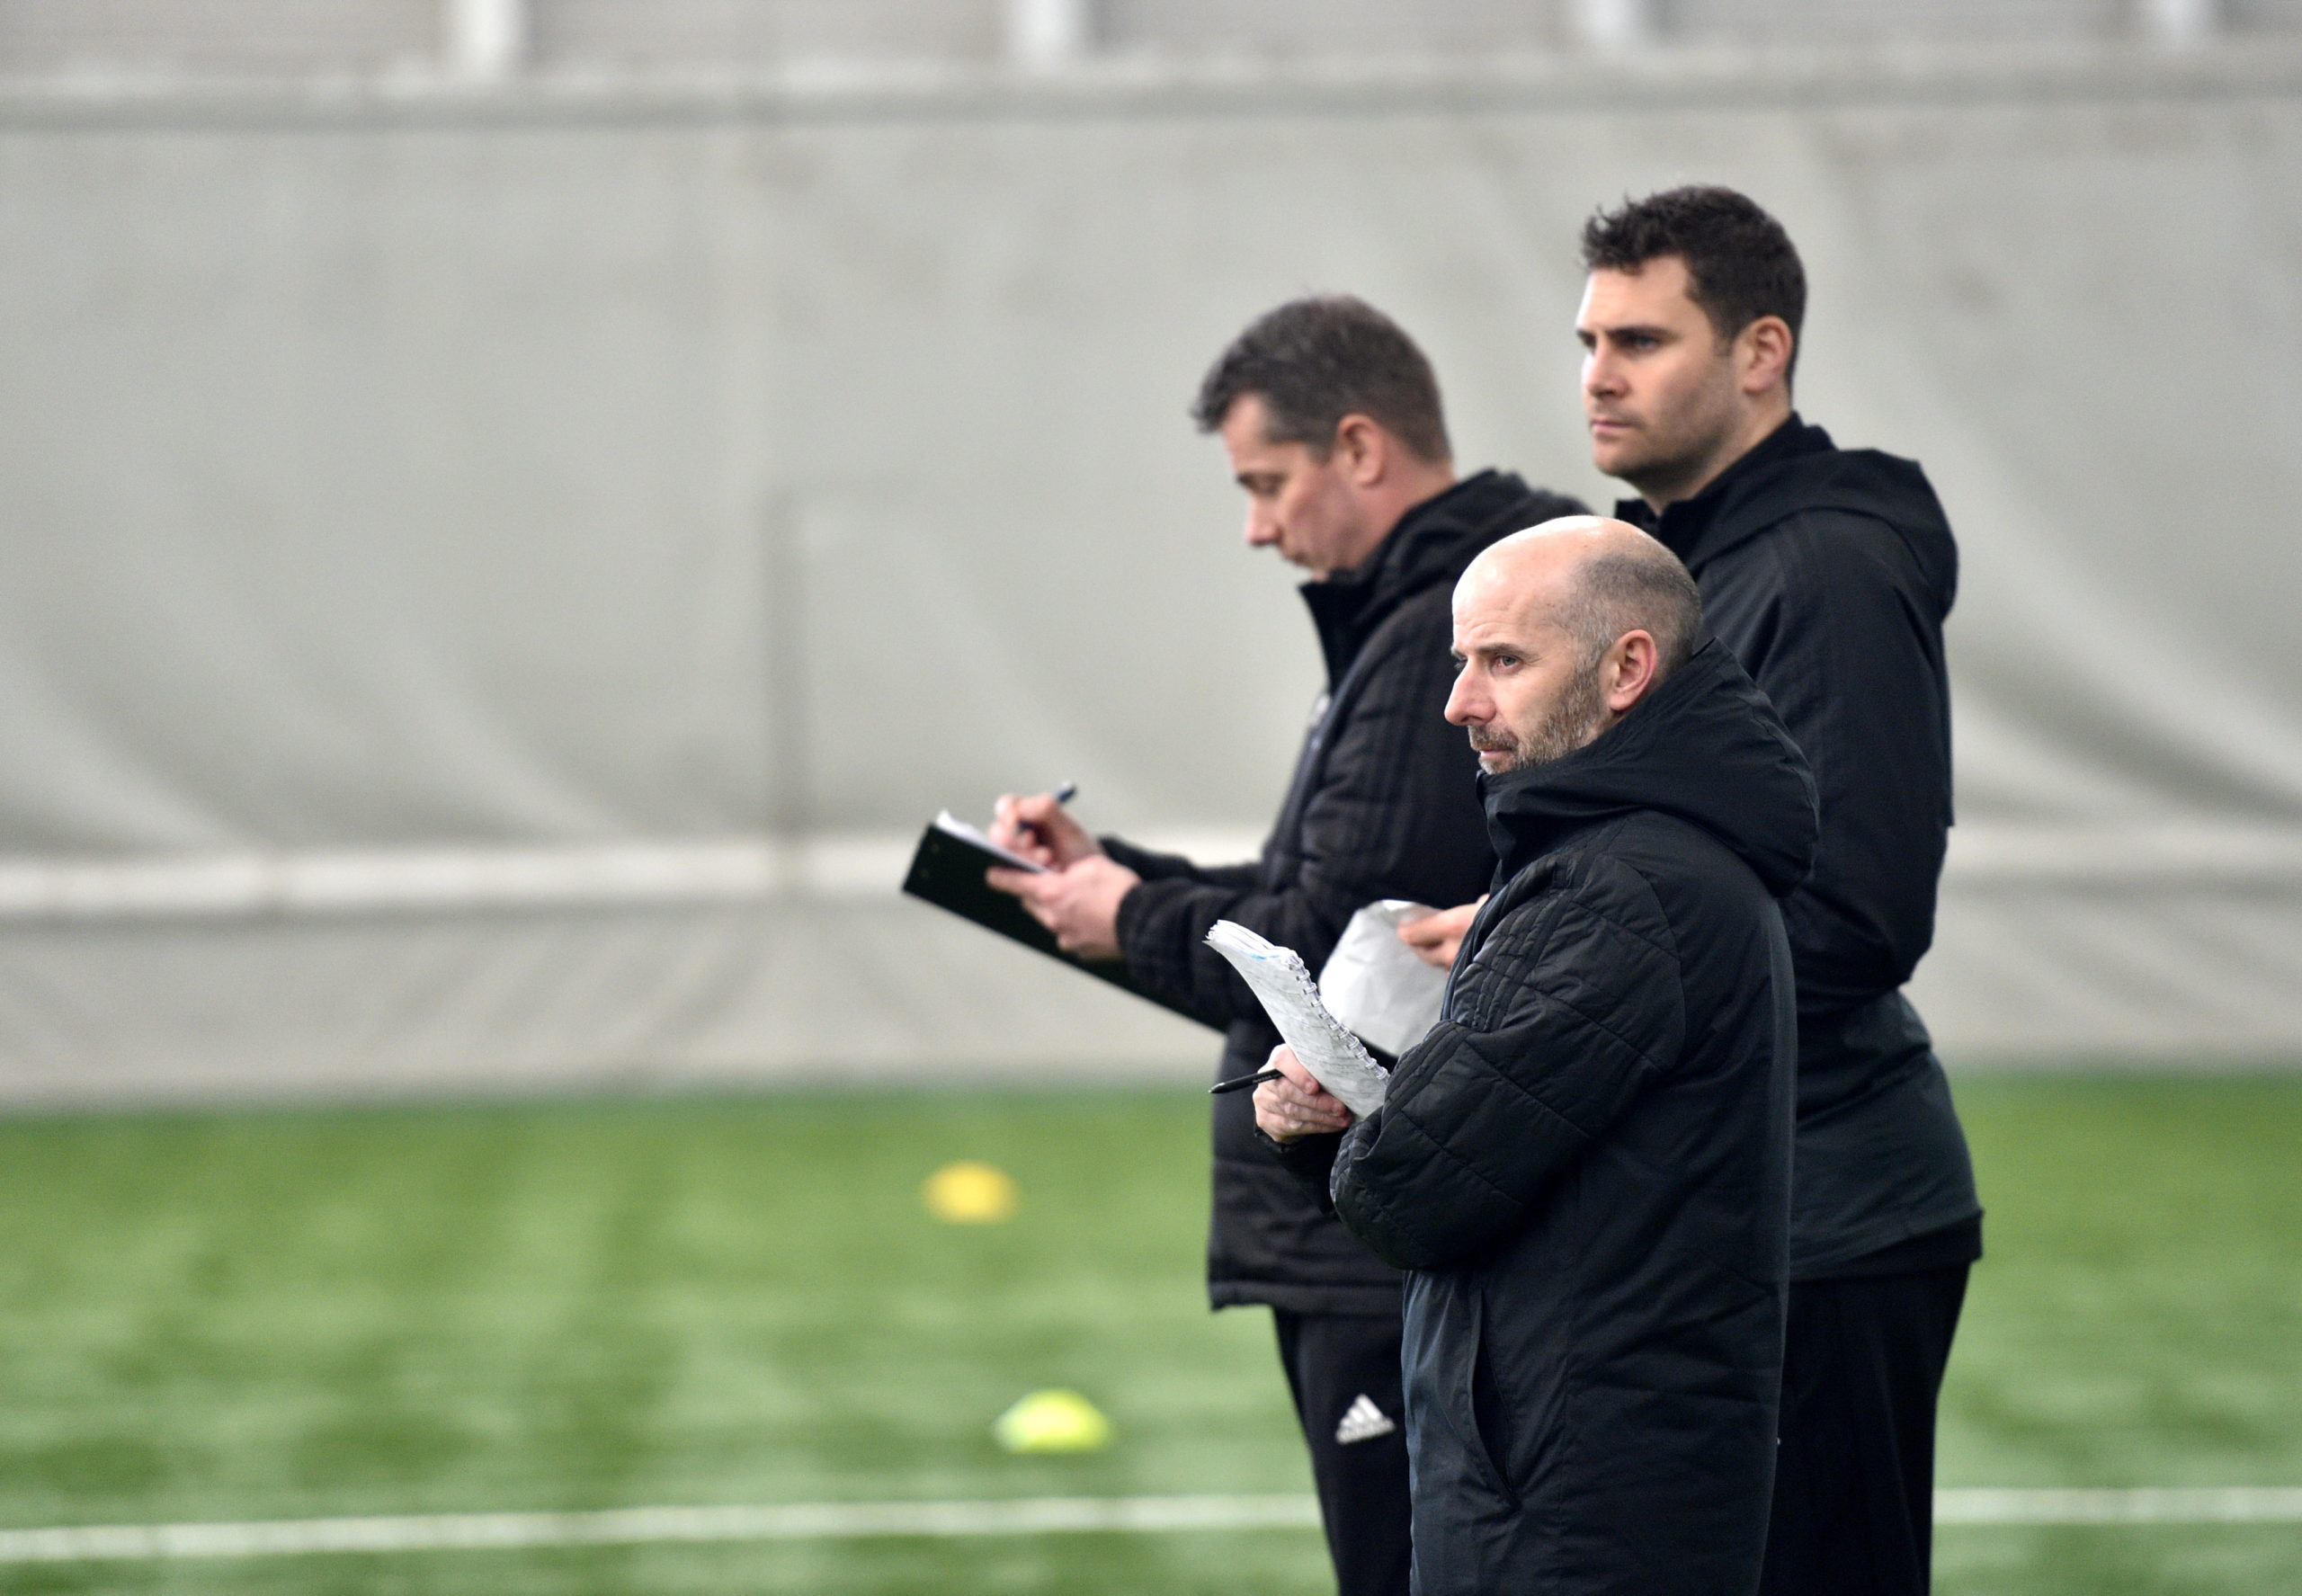 Pictured is Brian McLaughlin, the head of the Performance School programme with Stuart Glennie and Fraser Stewart at Aberdeen Sports Village. Picture by Darrell Benns